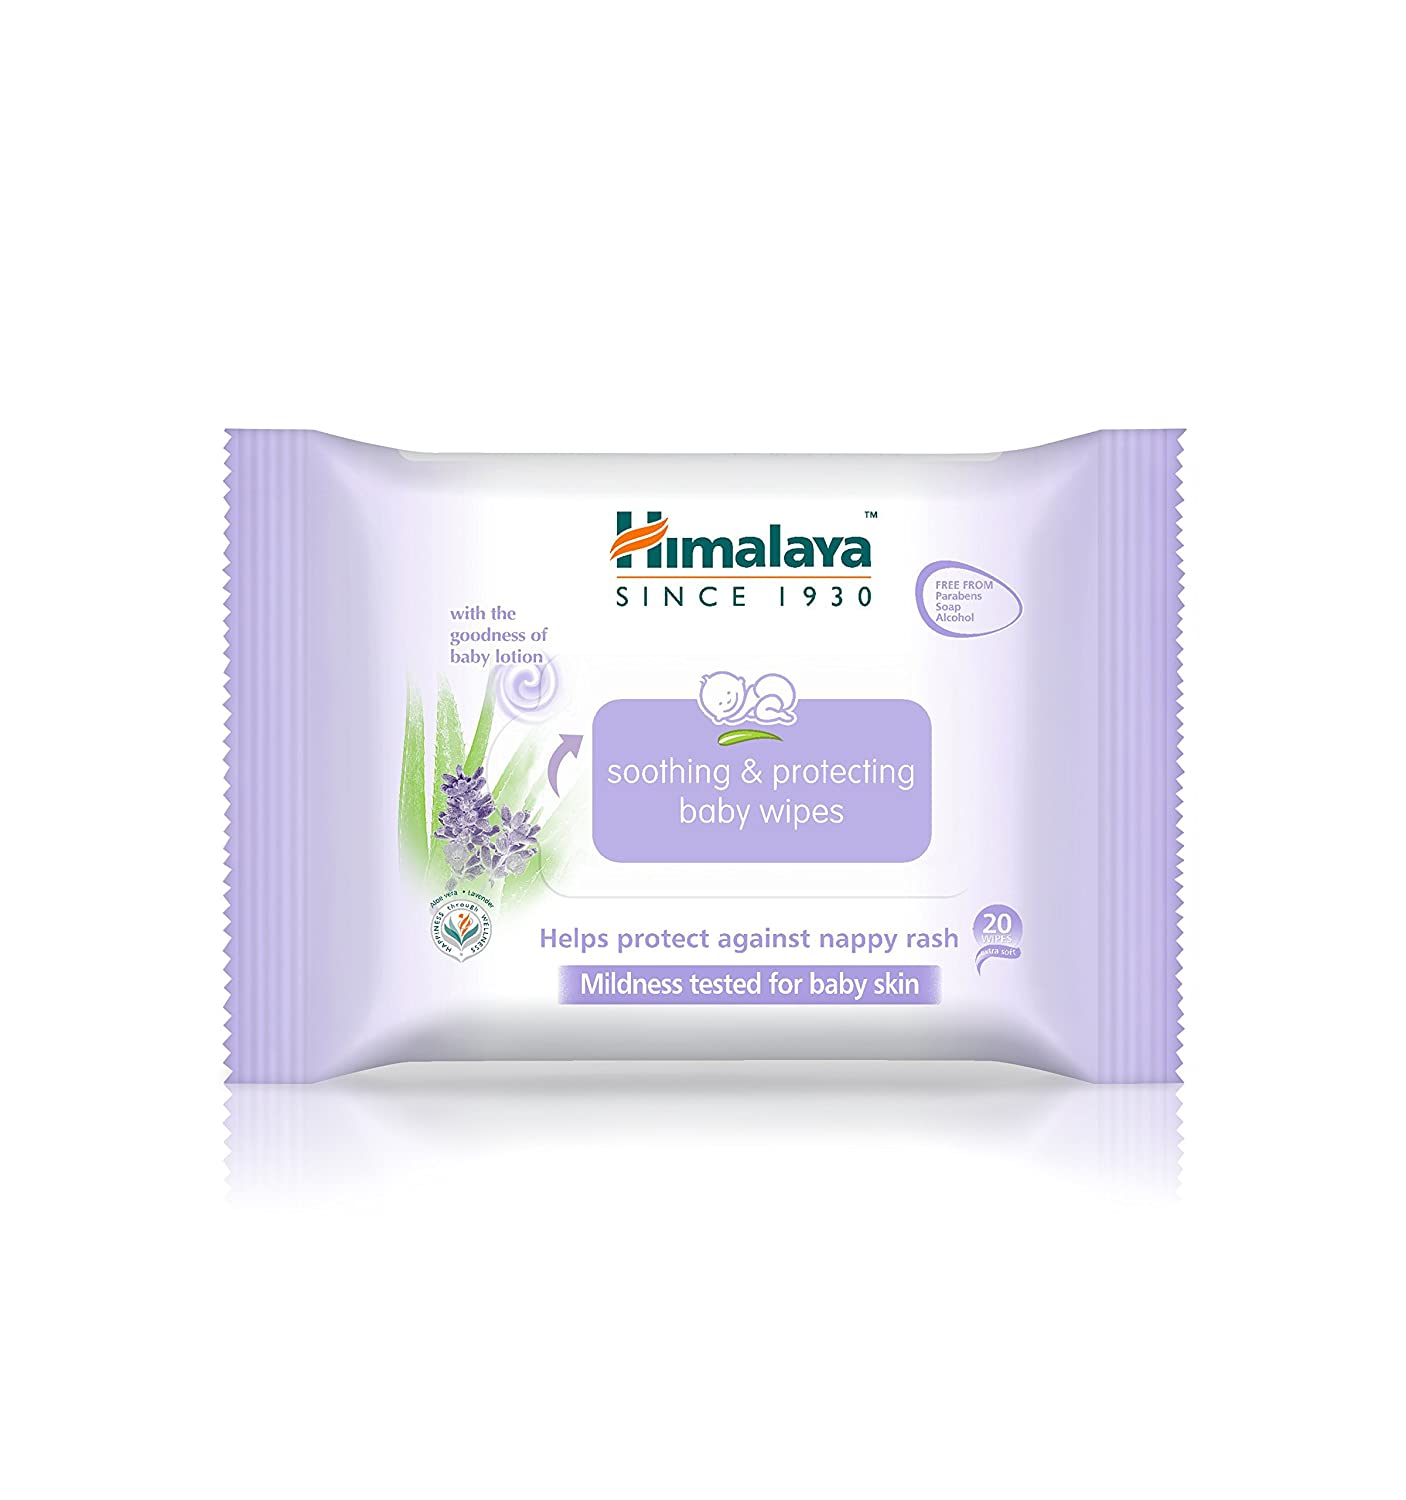 Himalaya Gentle Cleansing Baby Wipes – Fragrance-free, Alcohol-free, Hypoallergenic Cleansing Cloth – 56 Wipes Per Package, 6 Count (Gentle Cleansing Baby Wipes) Himalaya Herbals